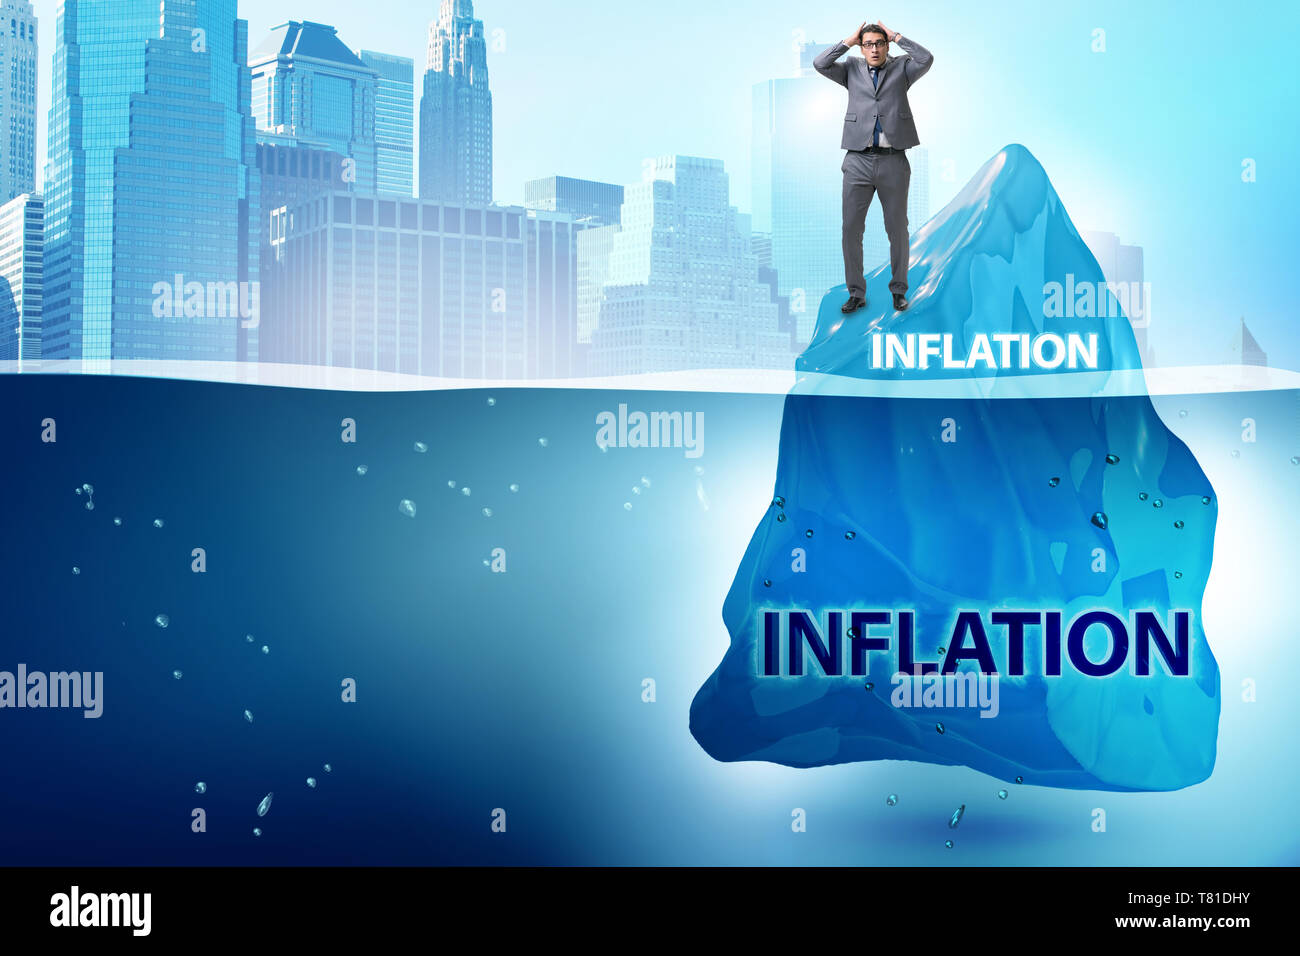 Businessman in inflation concept wih iceberg - Stock Image